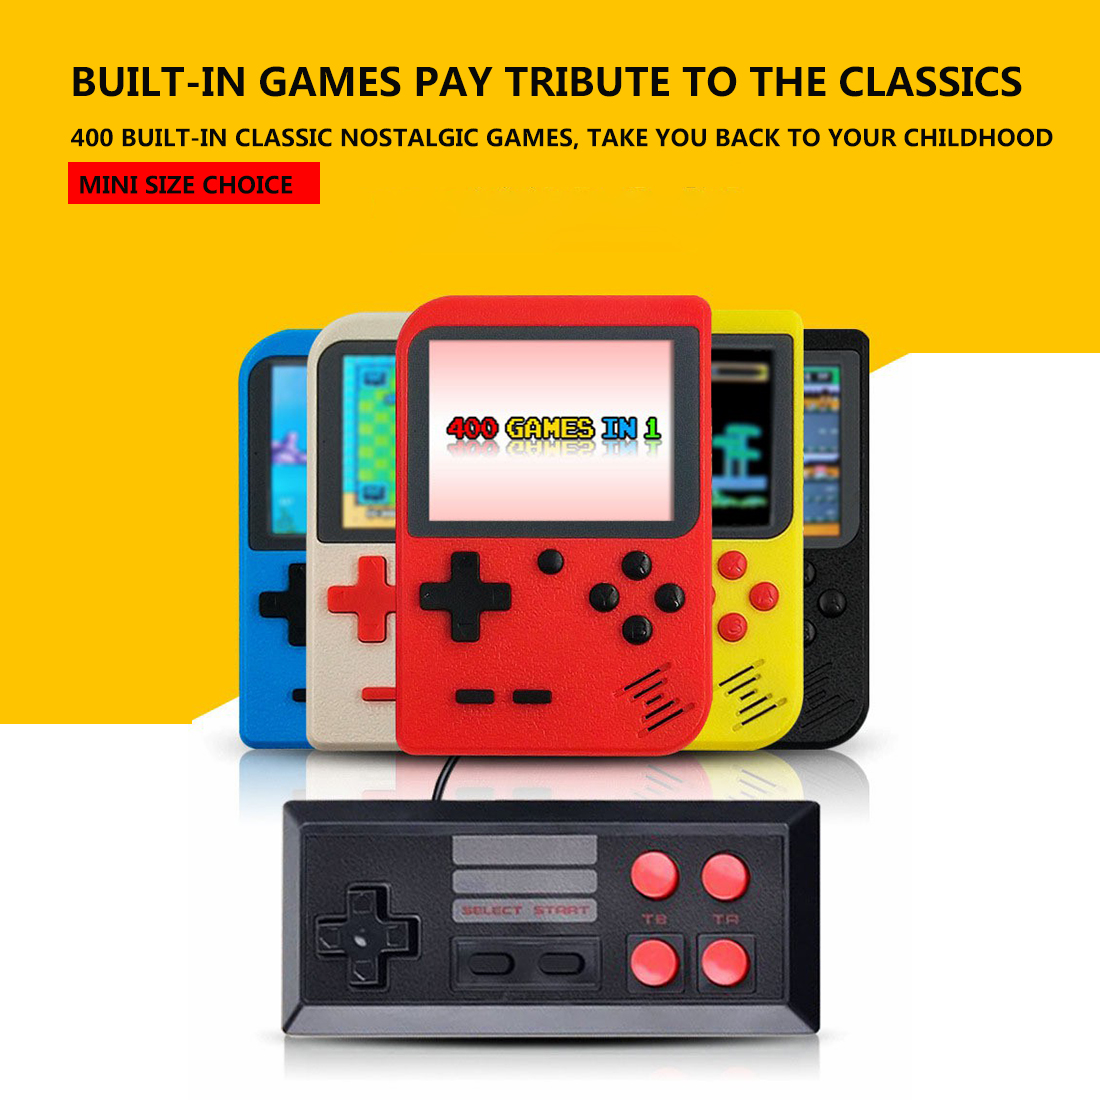 Handheld Game Console Retro Mini Game Player with 400 Classical FC Games 2.8-Inch Color Screen Support for Connecting TV & Two Players (Upgraded Version)